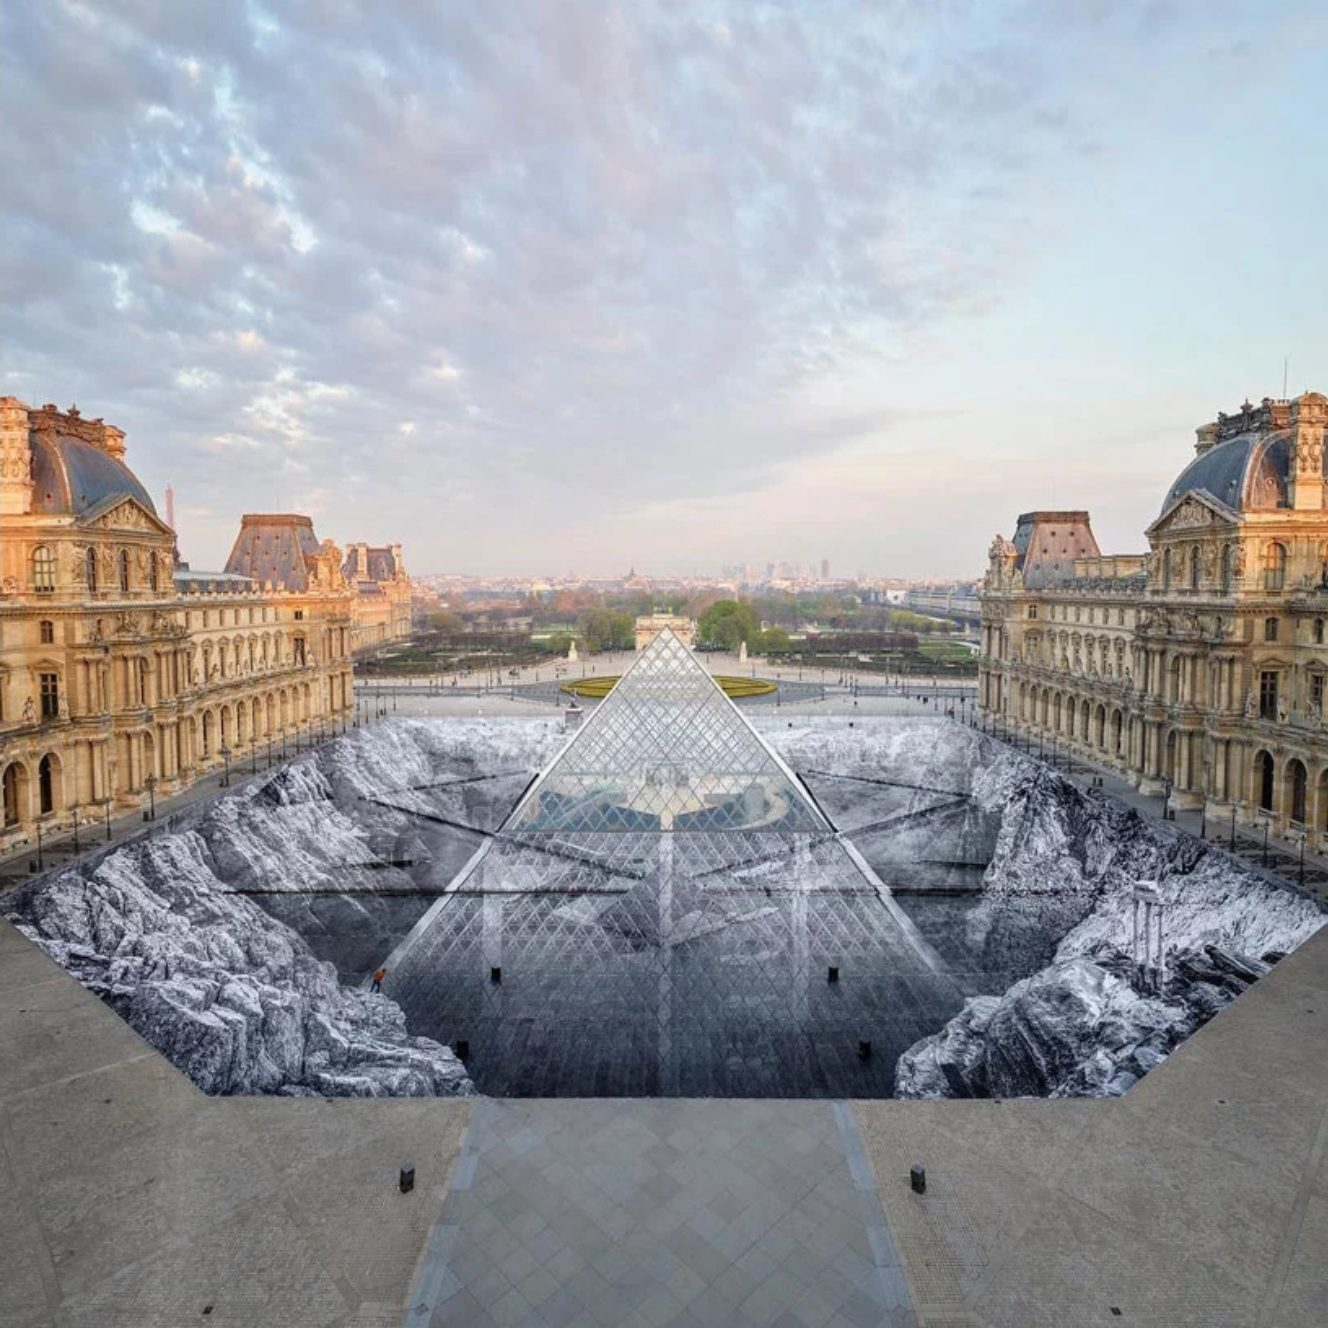 JR Louvre Optical Illusion 1